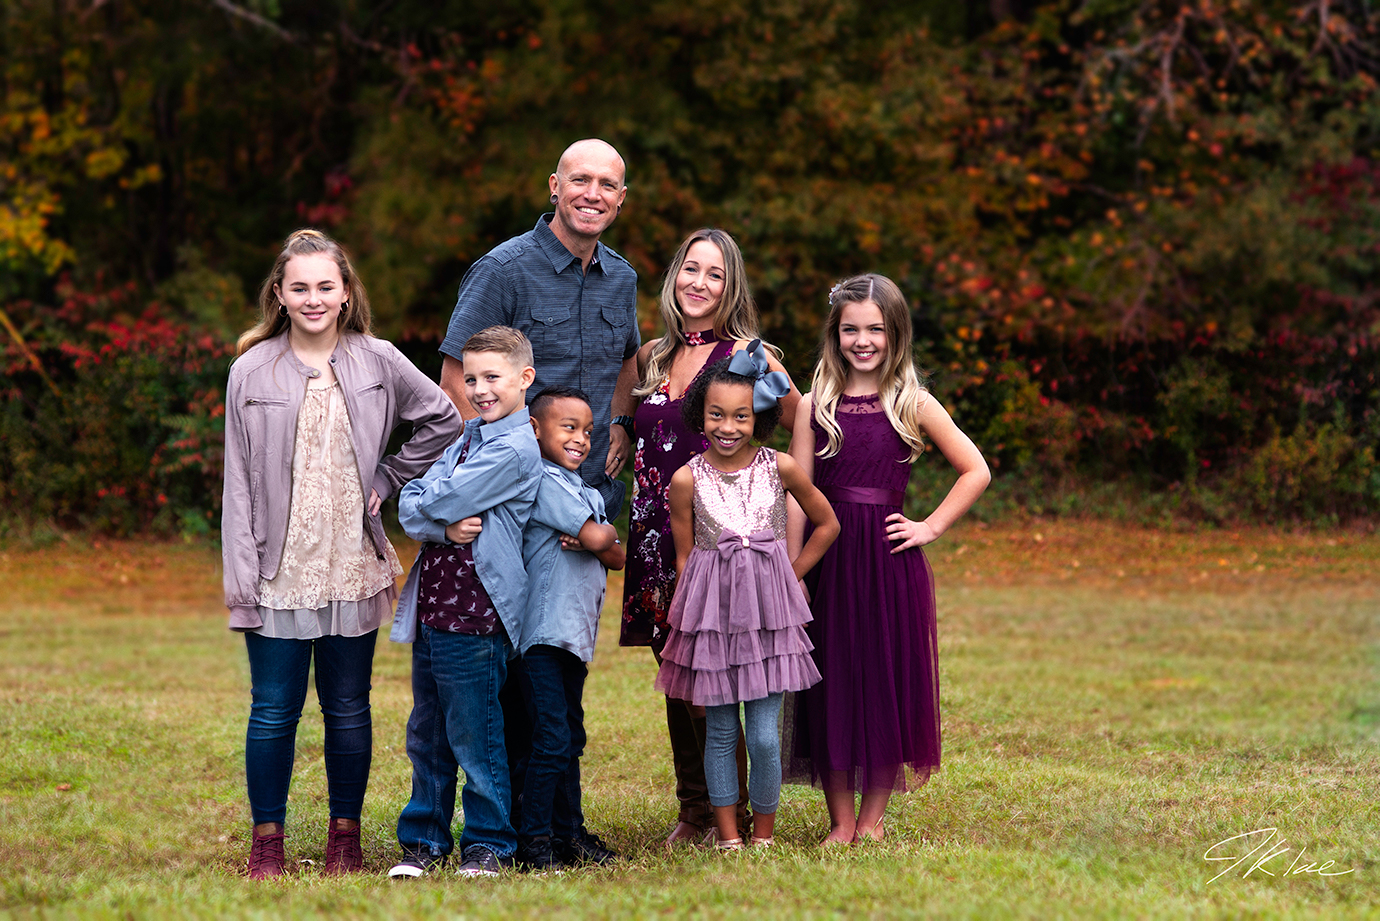 Family Portrait photographed with fall colors in Lindale Texas